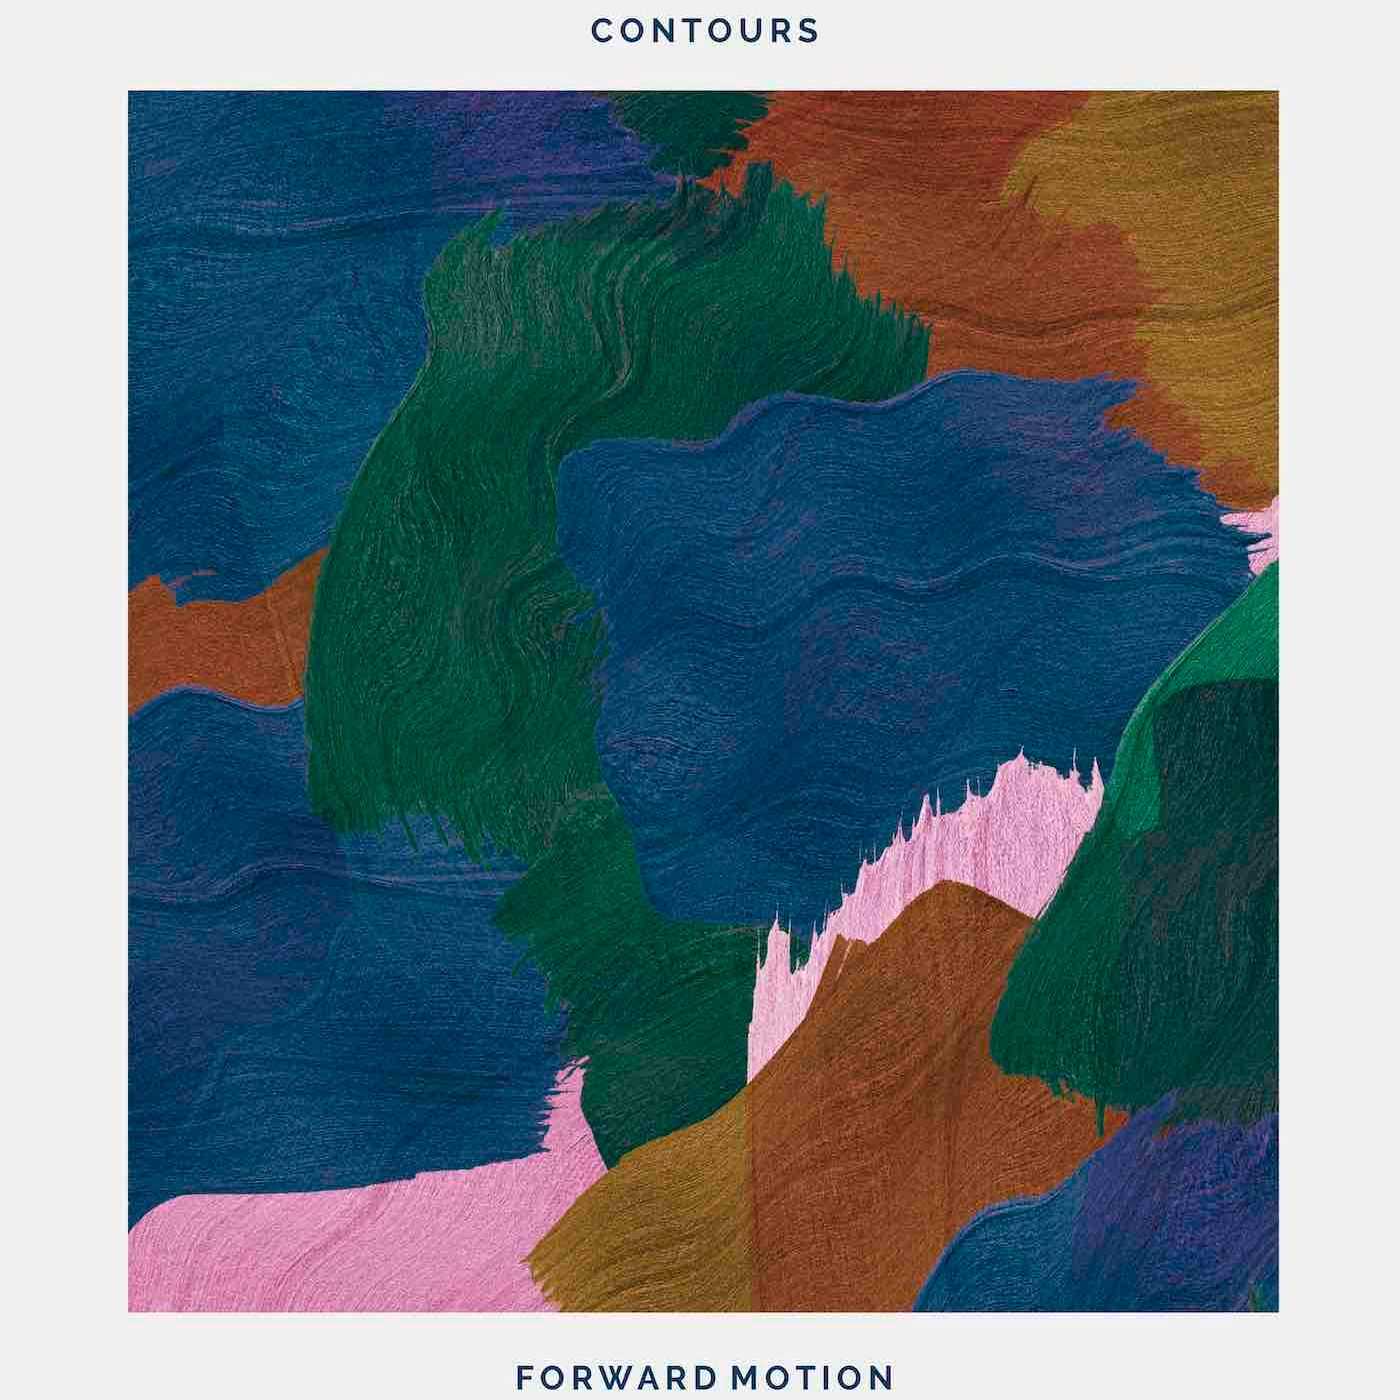 Contours/FORWARD MOTION (K15 REMIX) 12""